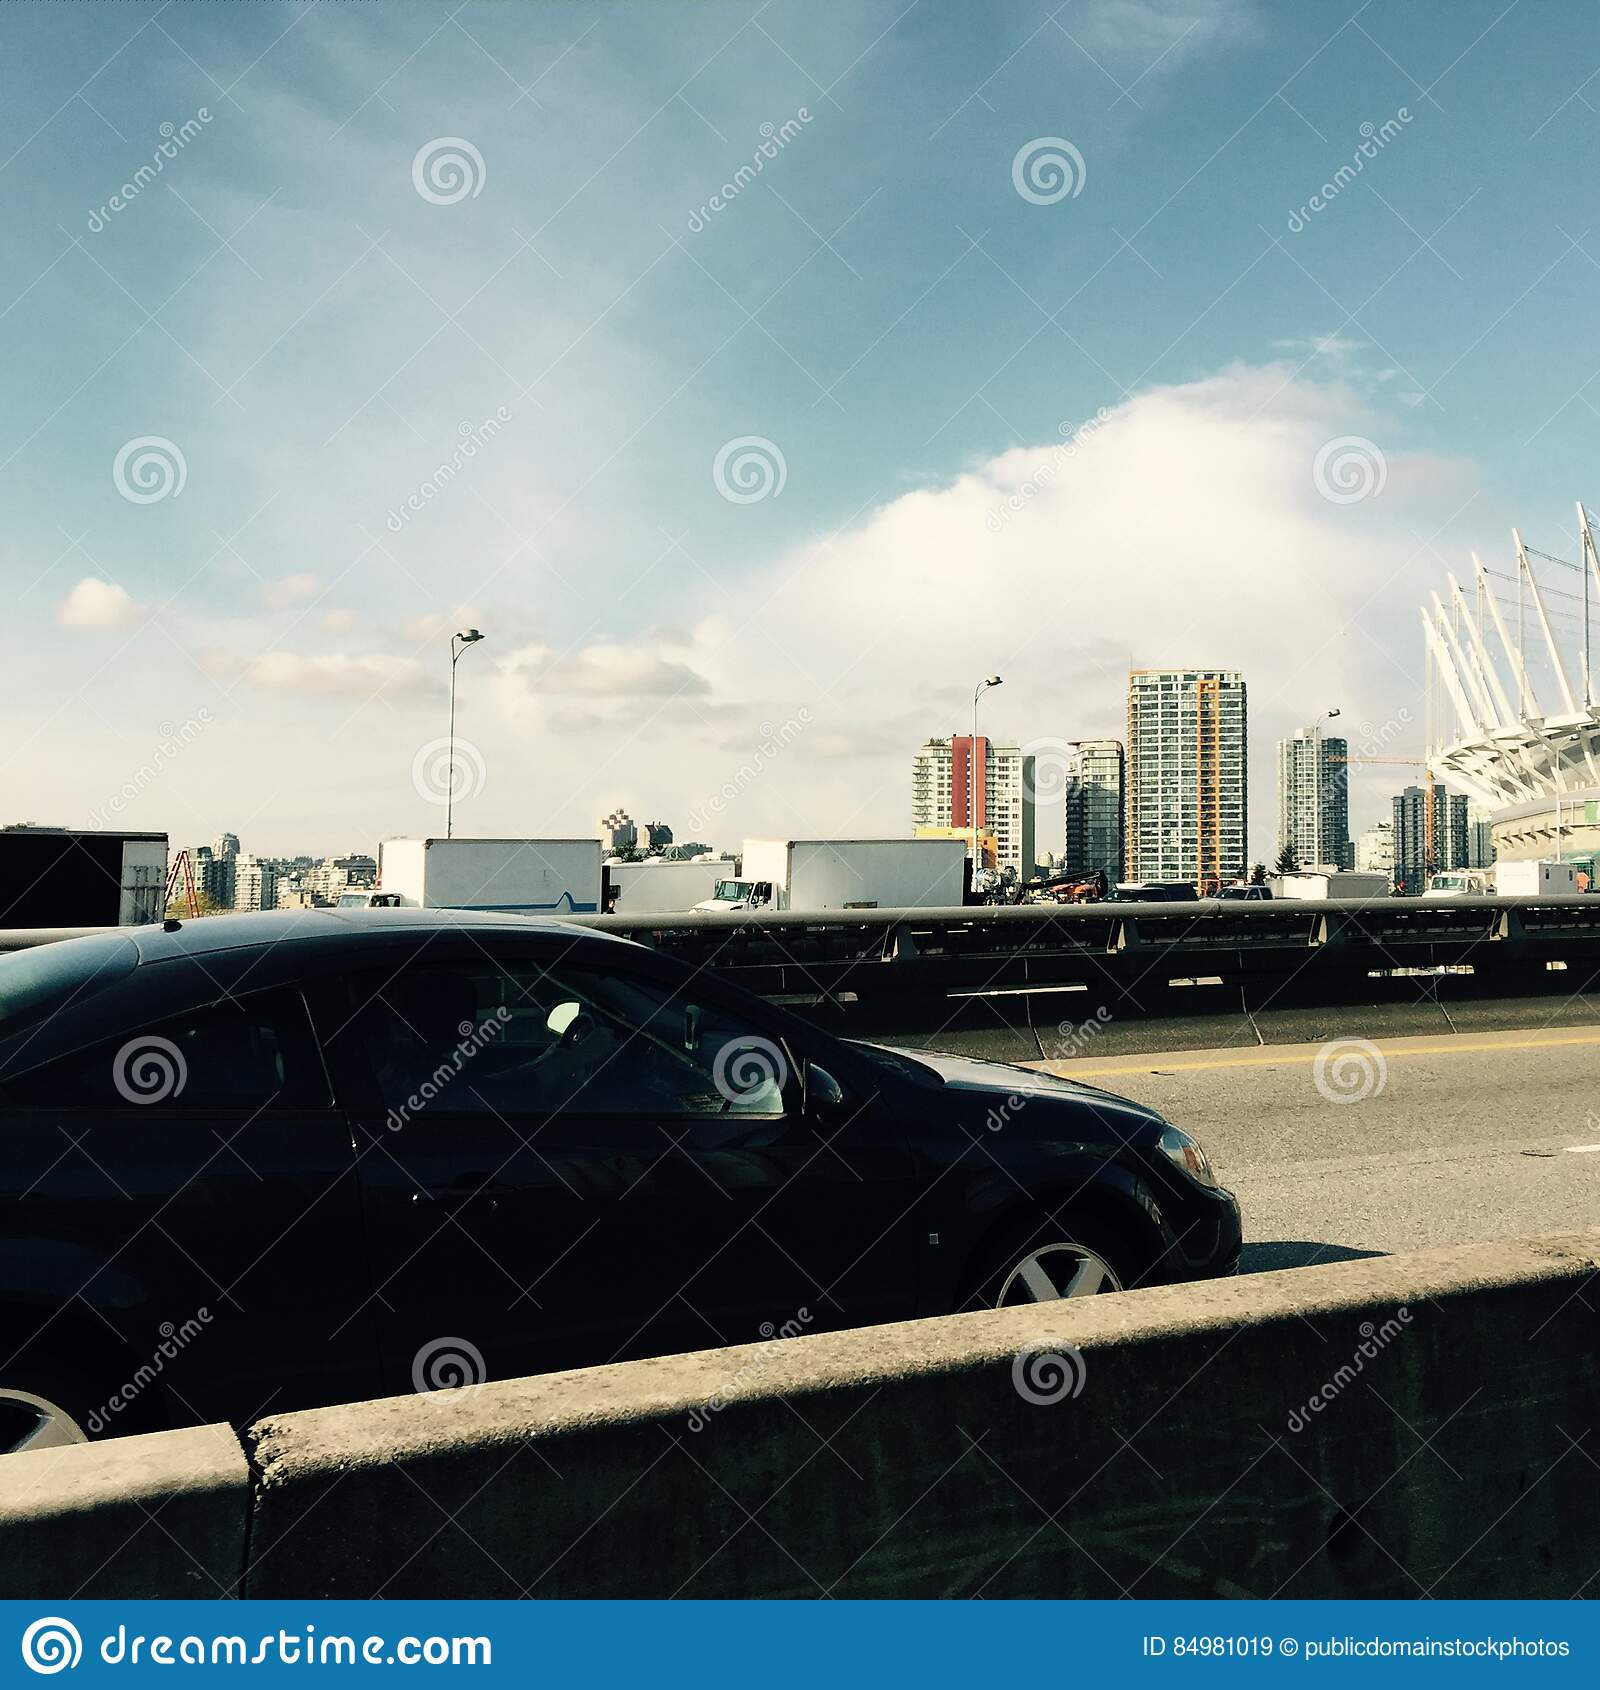 Download 06April2015 Bicycling To Work Stock Image - Image of bicycling, sunny: 84981019